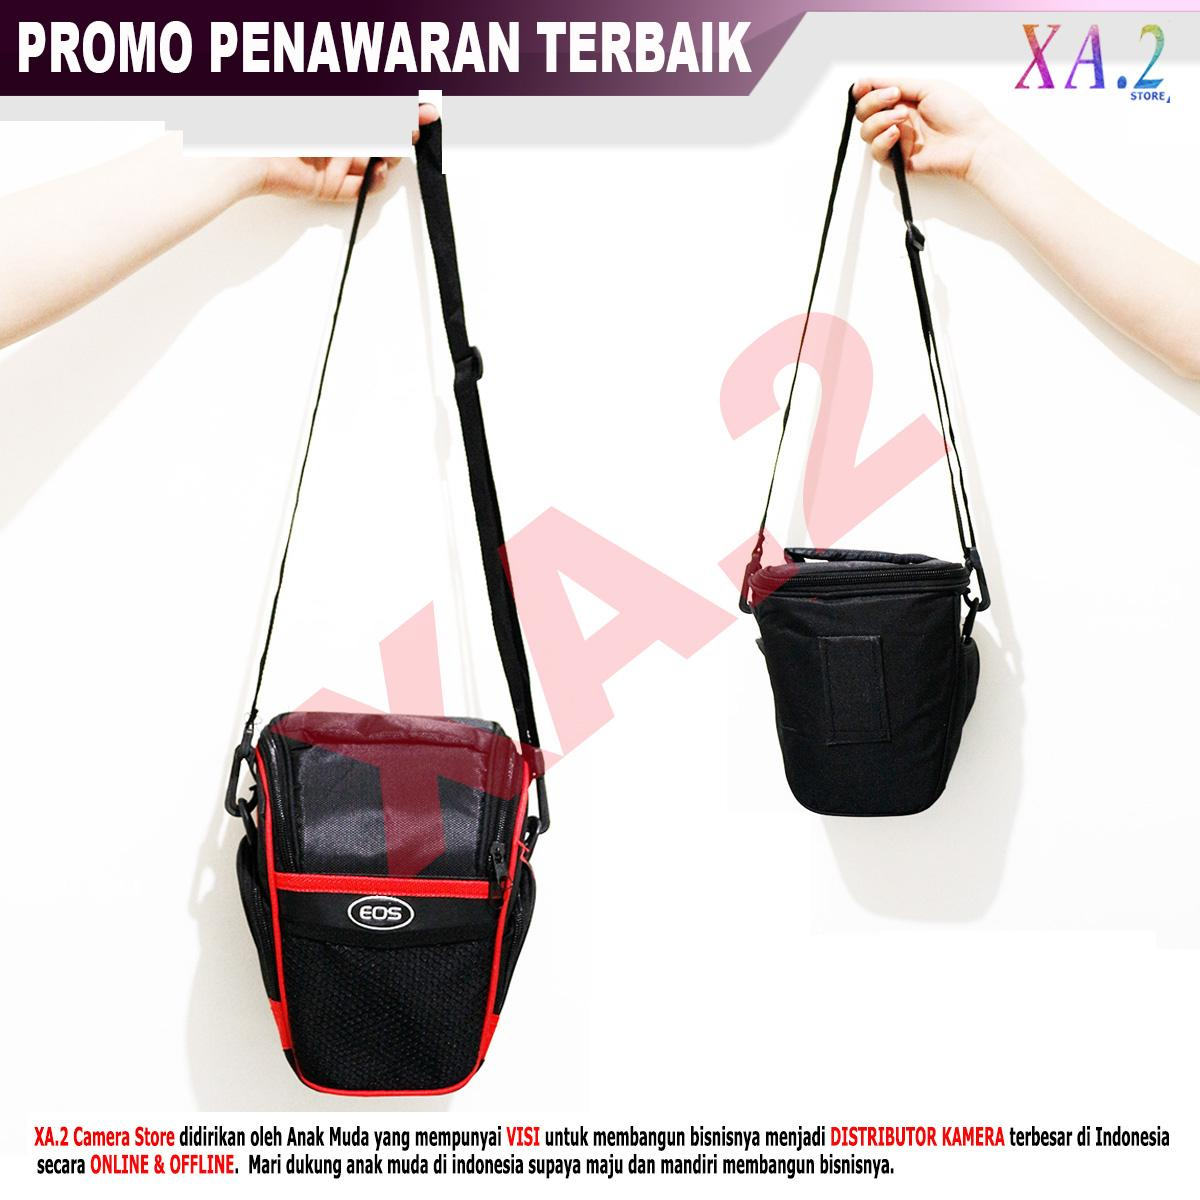 The Cheapest Price Tas Kamera Dslr Canon Eos Hitam List Merah Rp30000 Tripod Excell Motto 2810